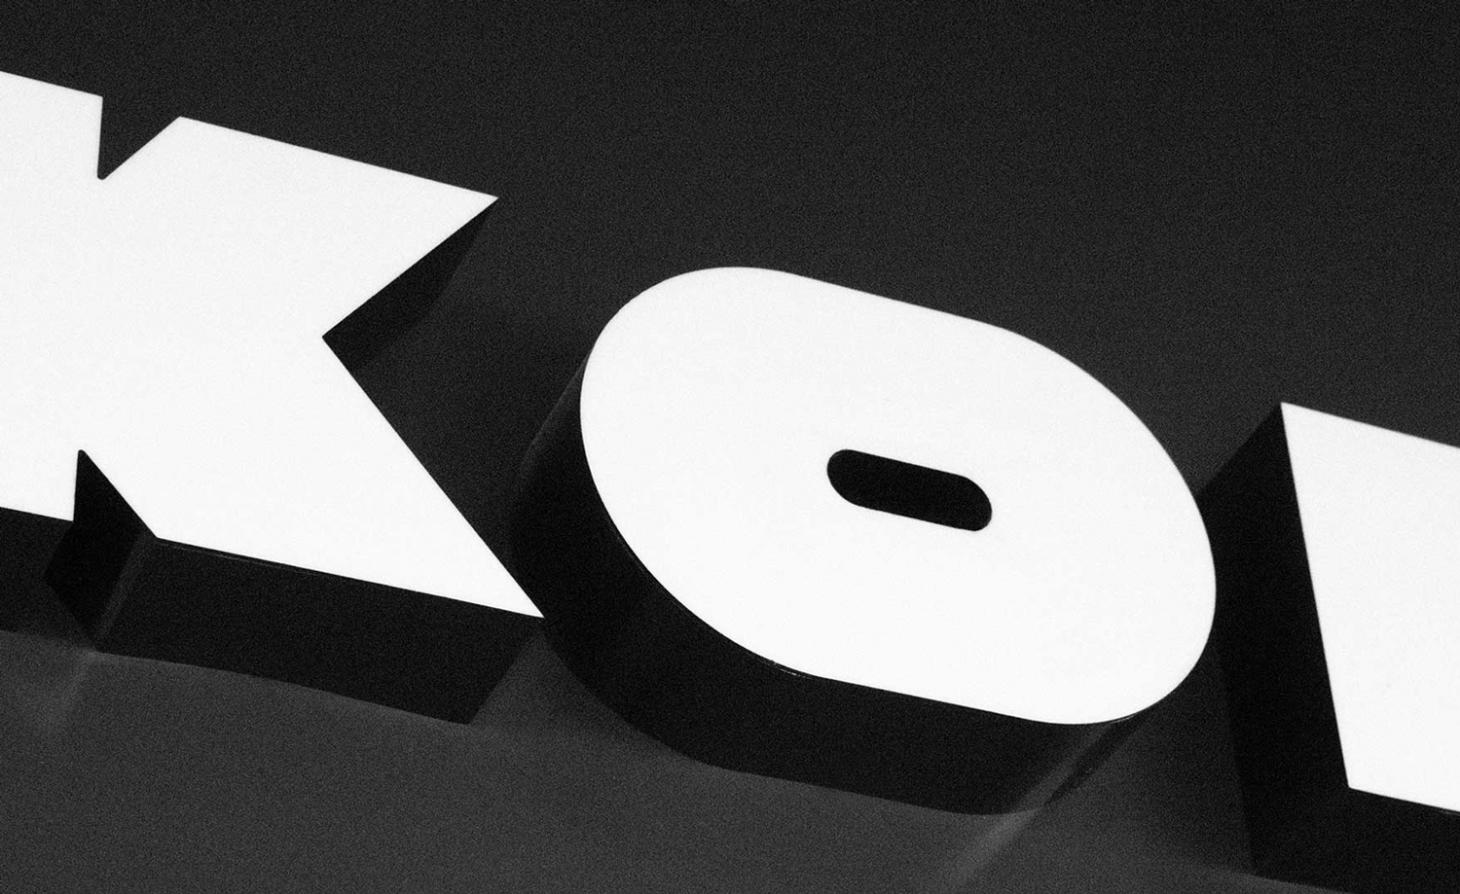 Koi & Roi visual identity, by Panama Studio